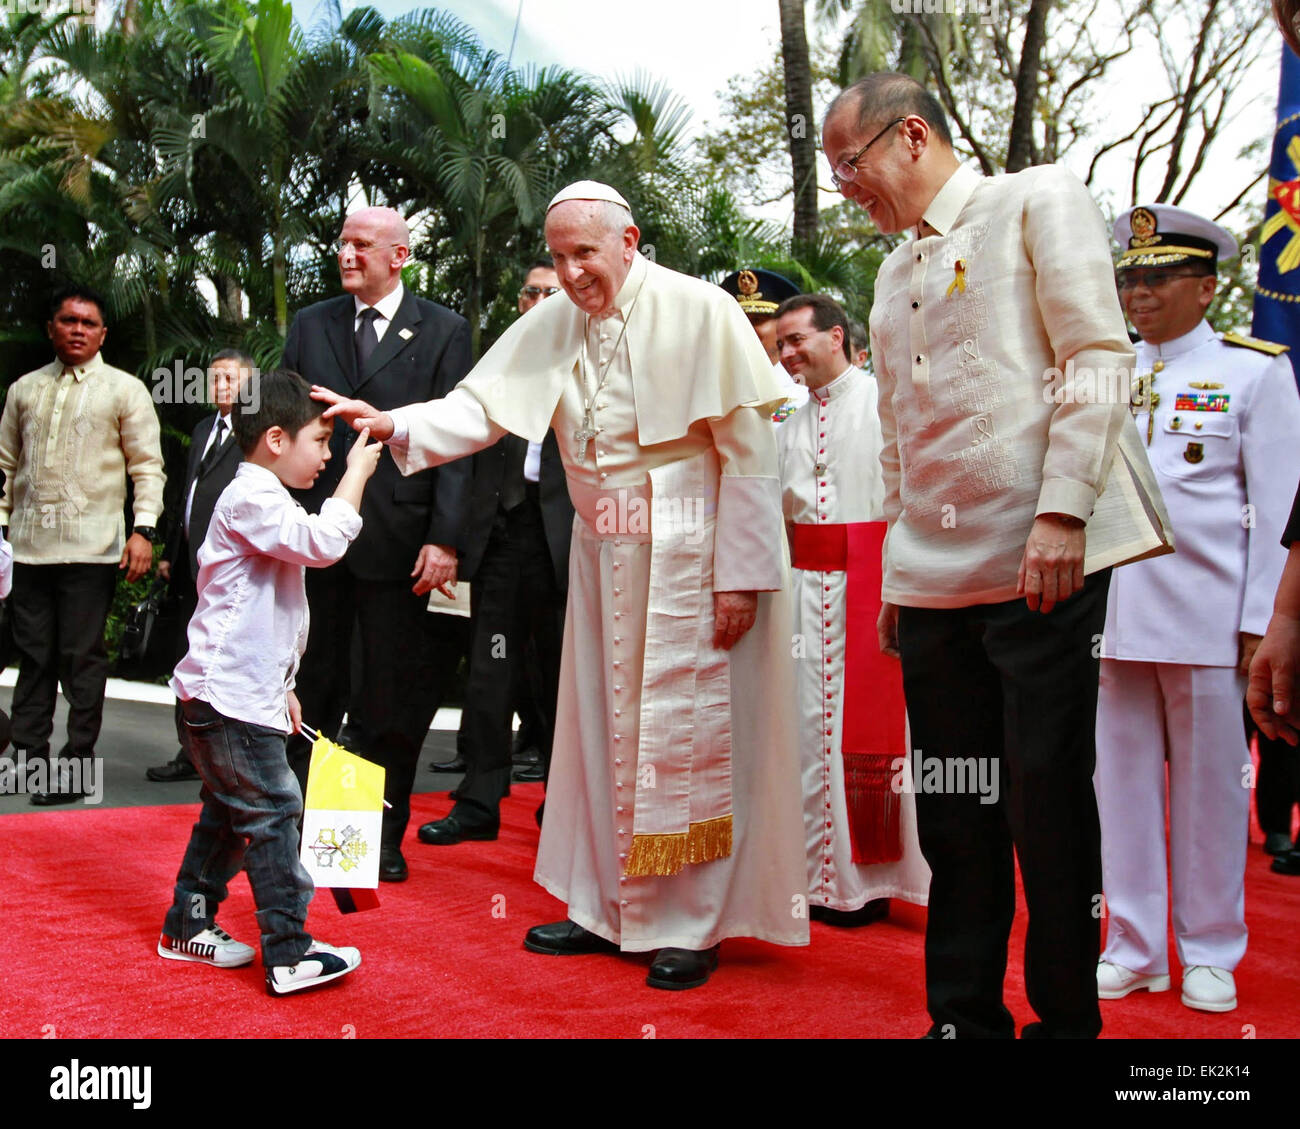 Pope Francis accompanied by President Benigno S. Aquino III, blesses children in the garden at the Malaca–an Palace - Stock Image